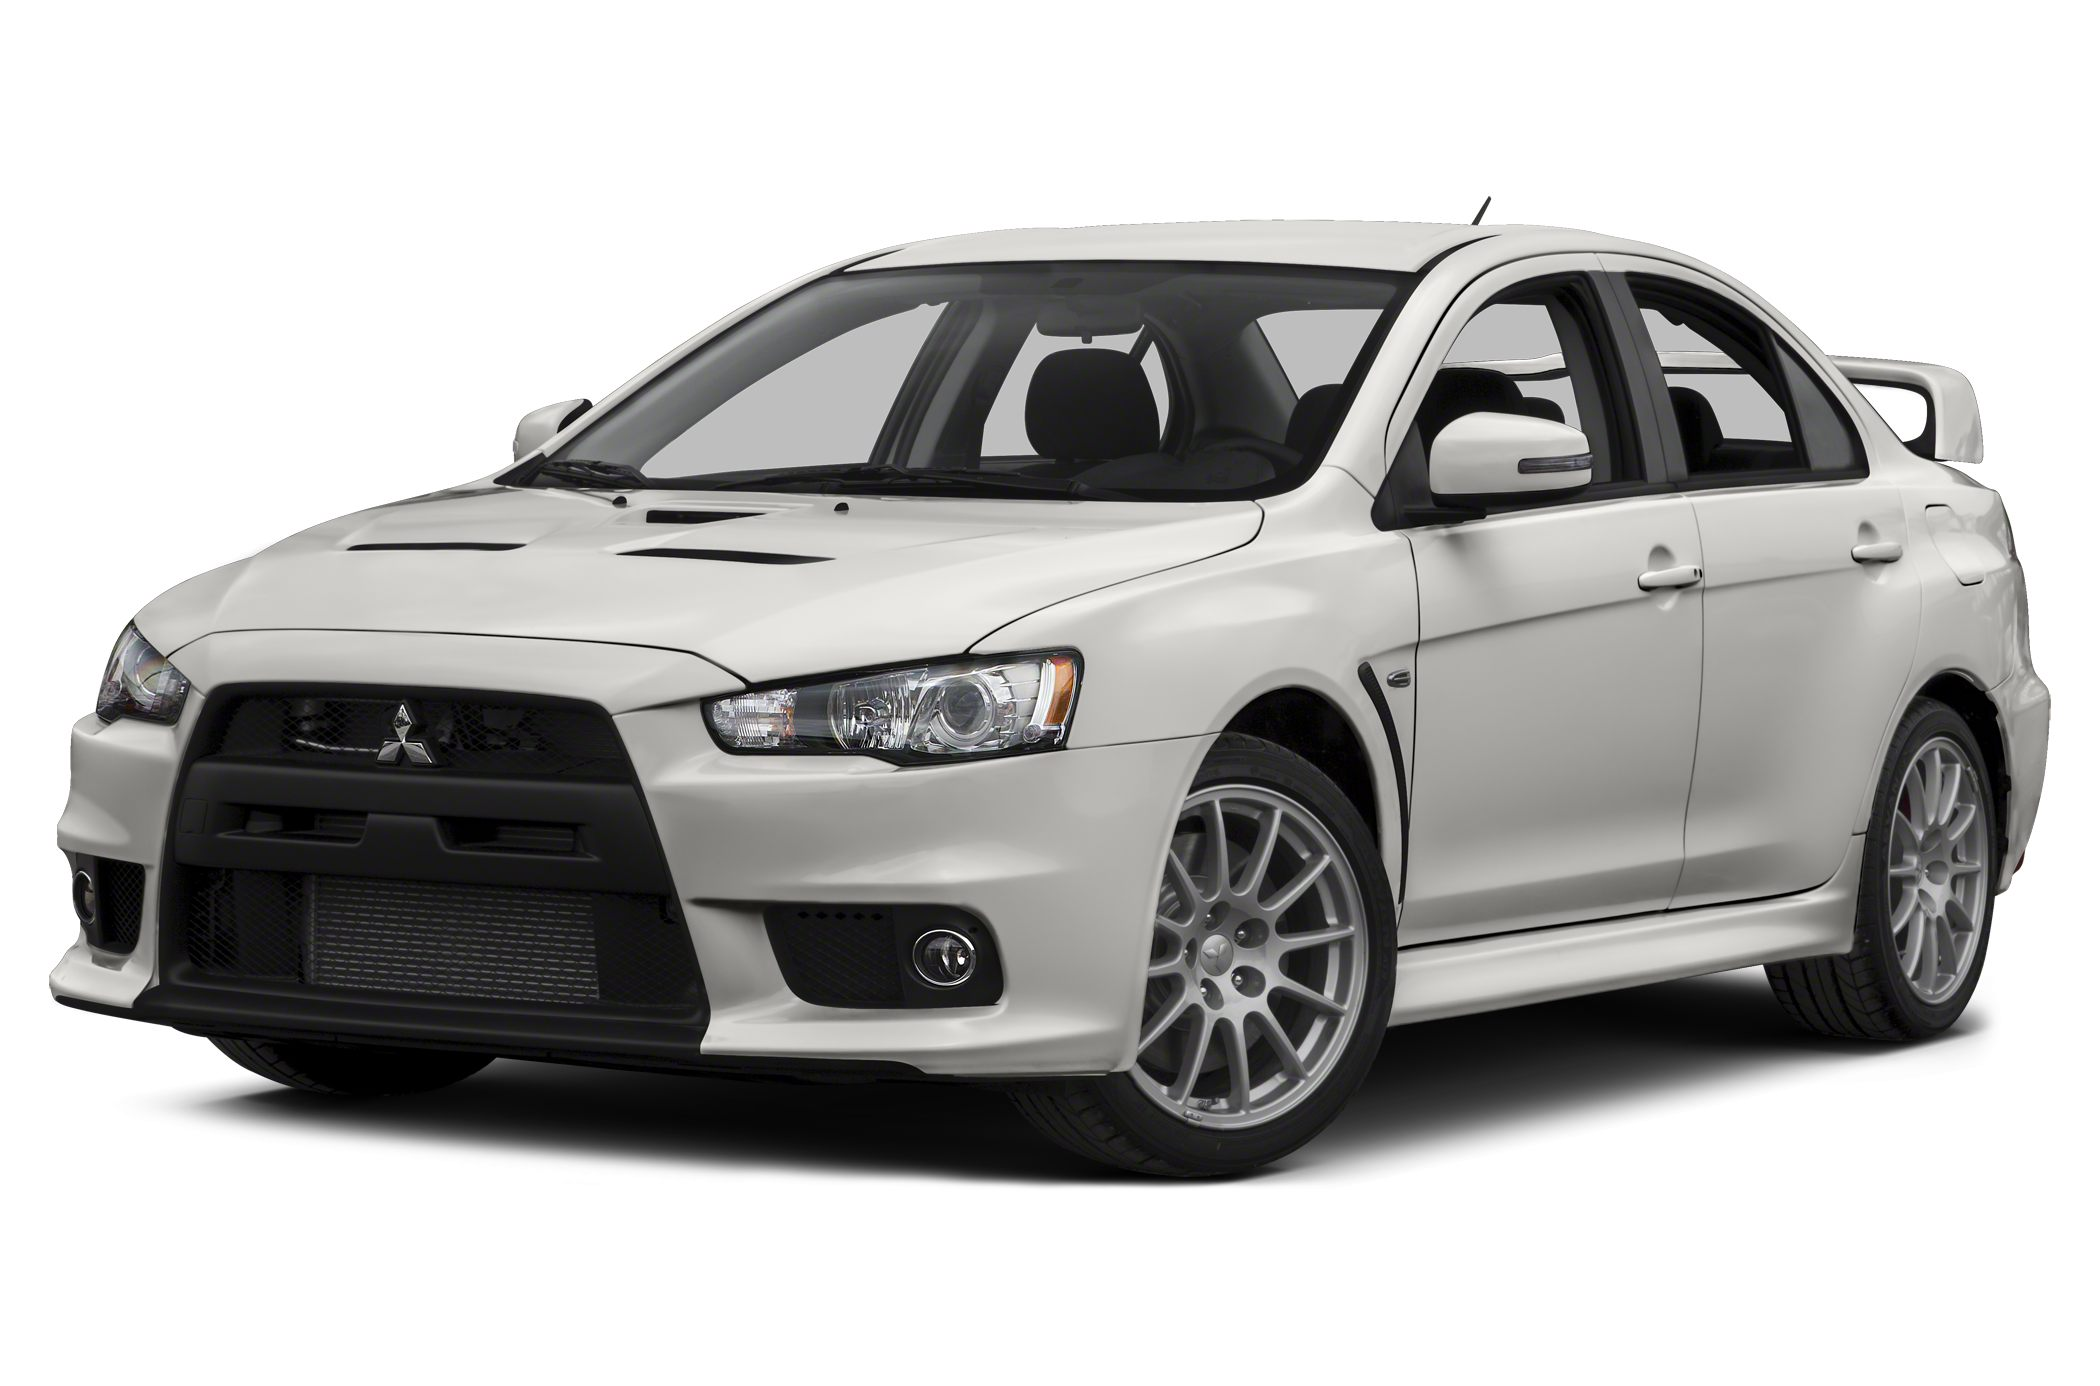 2015 Mitsubishi Lancer Evolution MR New Arrival Bluetooth This 2015 Mitsubishi Lancer Evolution